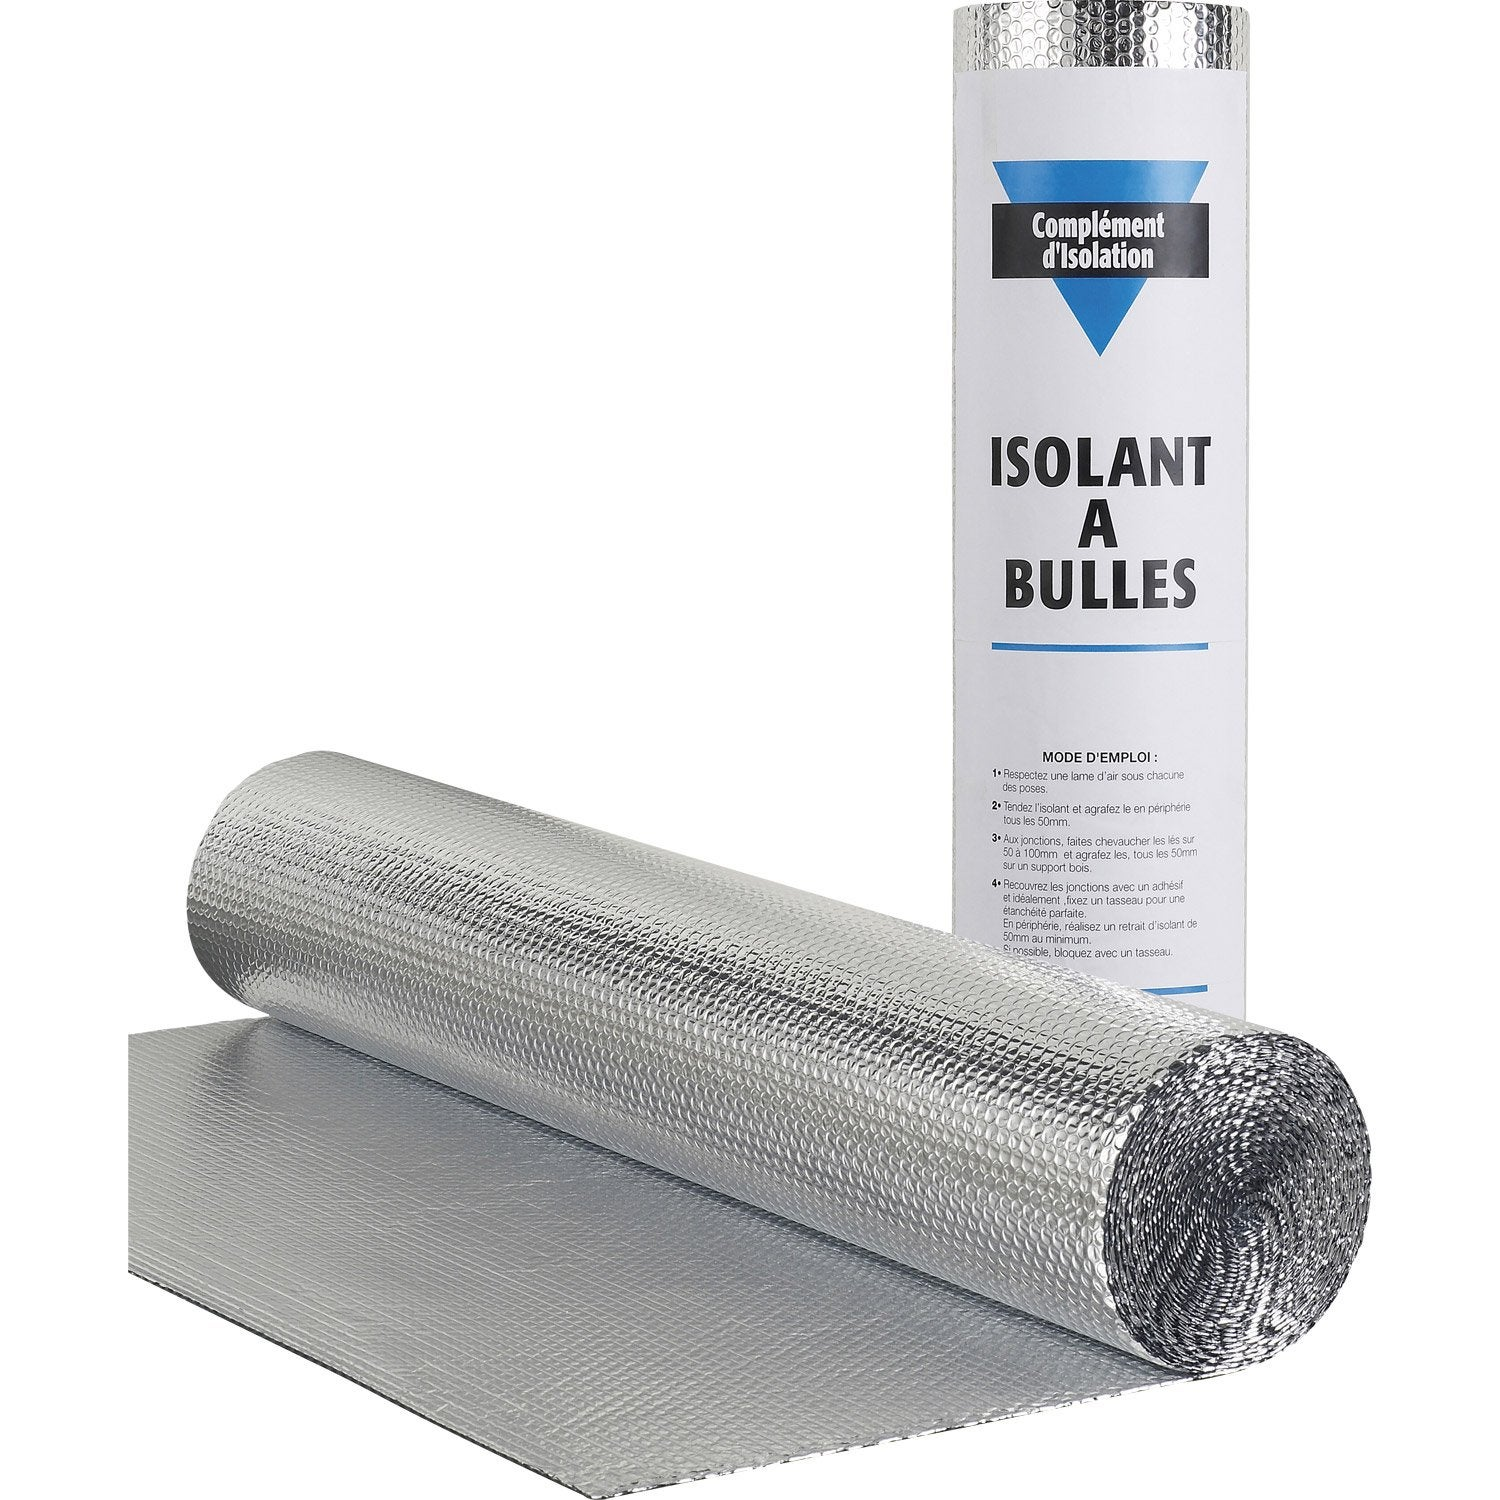 Rouleau isolant mince bulle actis 10 x 1 5 m ep 3 5 mm leroy merlin - Isolation garage leroy merlin ...